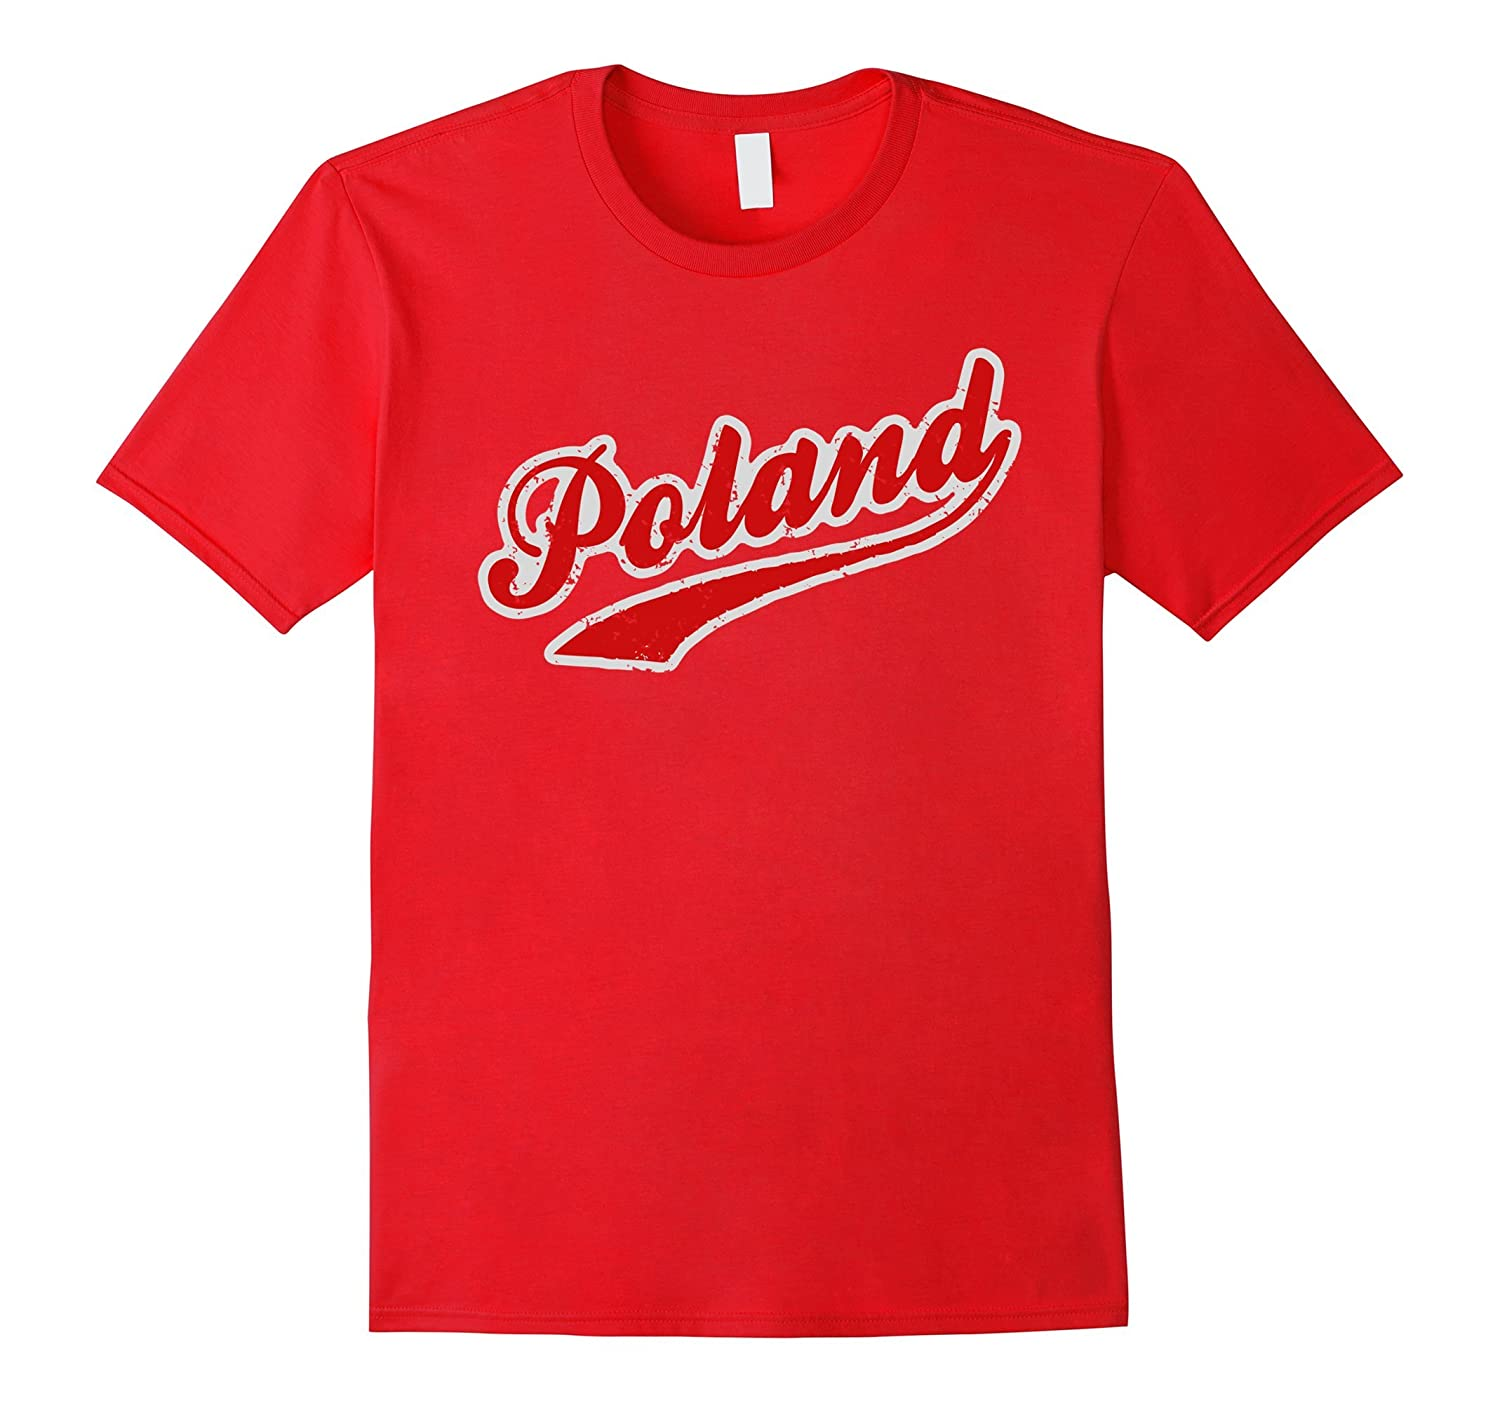 Poland T Shirt - Cool Polish American Team Style Tee-Vaci